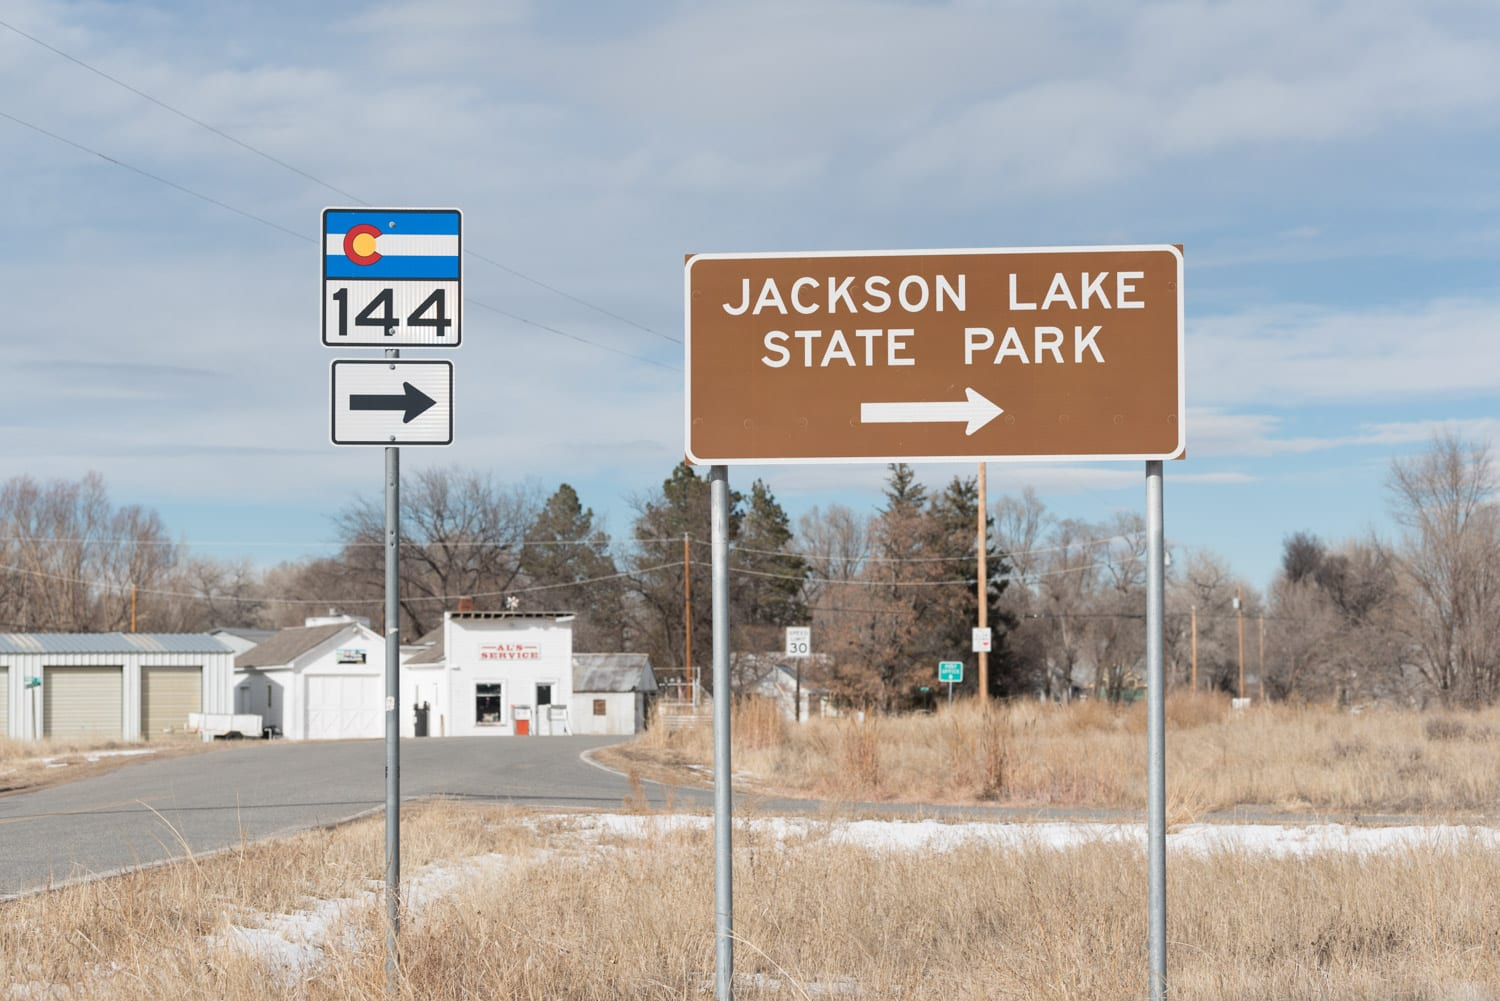 image of sign for Jackson Lake State park